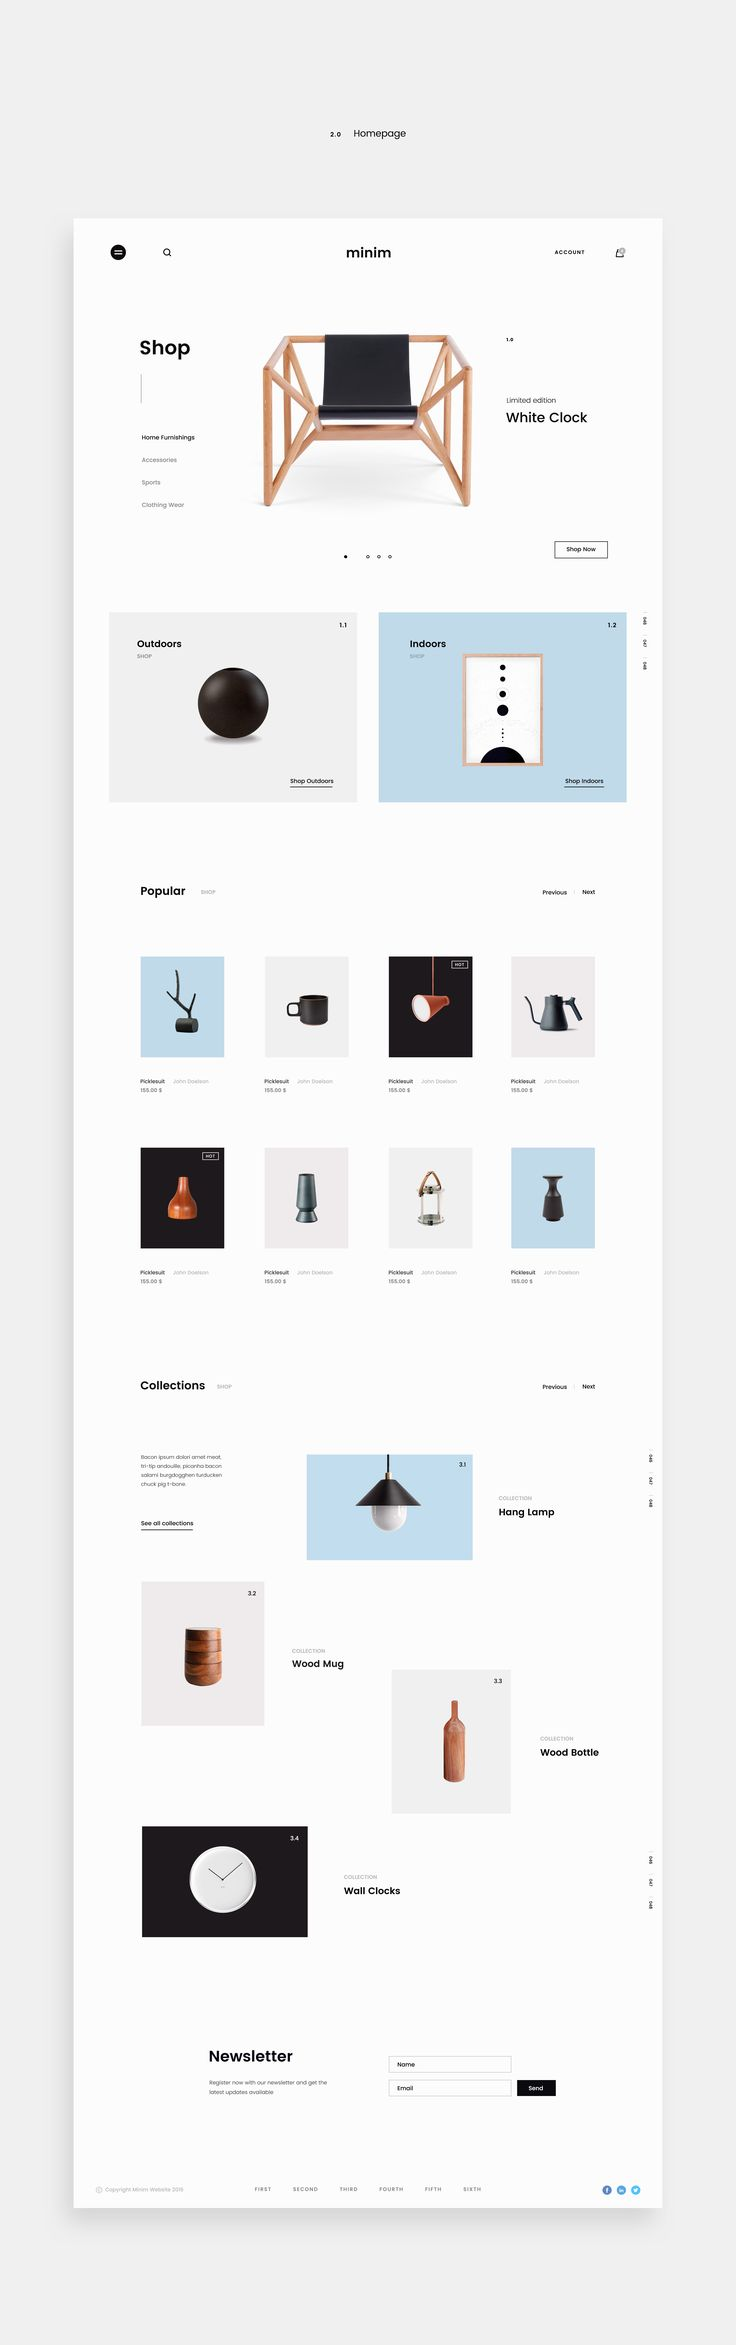 Minimalist e-commerce website design with clean and easy interface